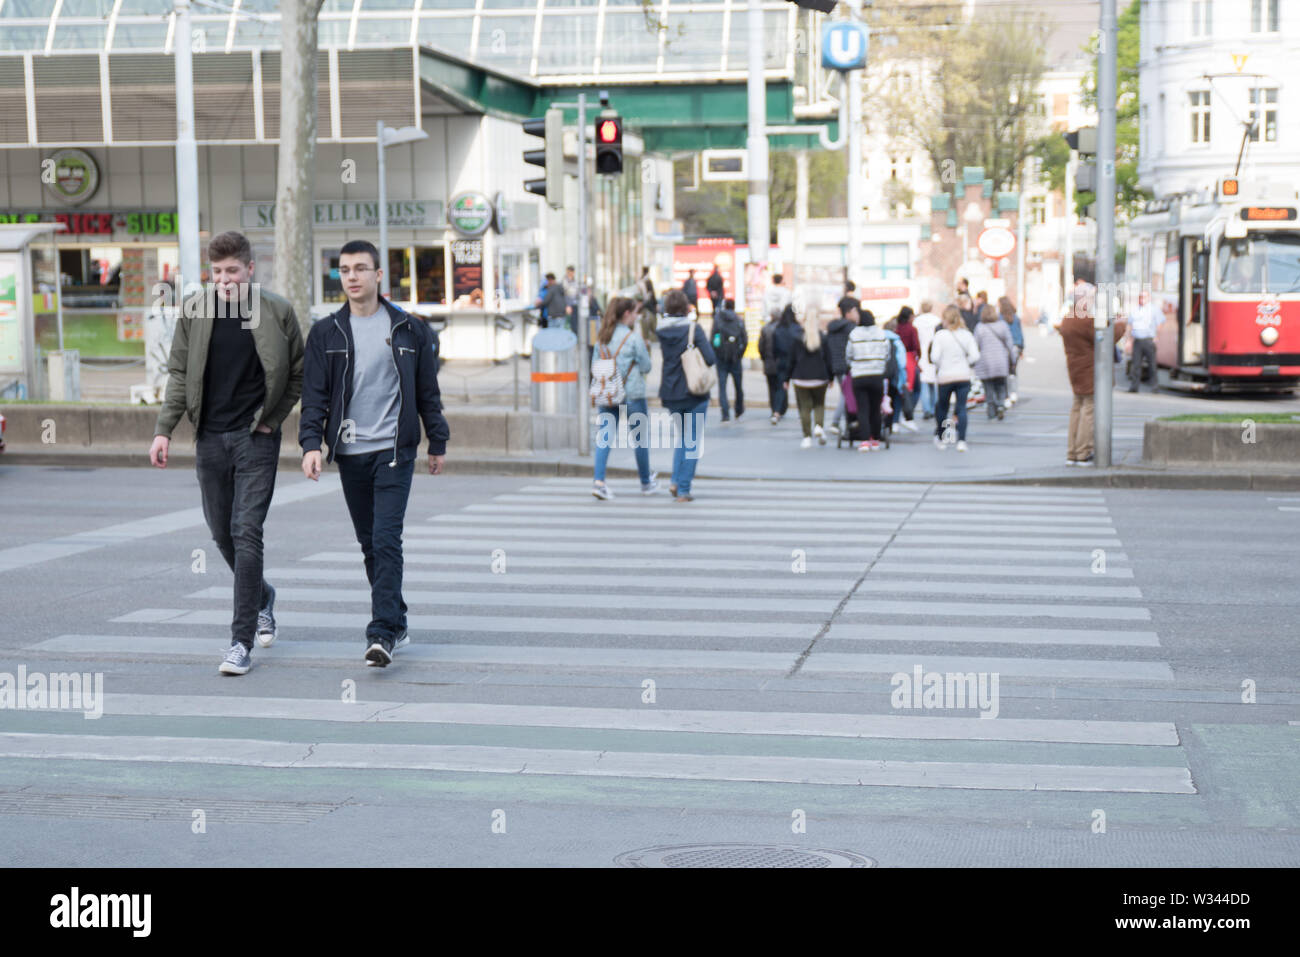 People crossing the street, taking public transport, walking their dogs and riding bicycles, traffic, zebra crossing in Vienna, Europe, Austria - Stock Image